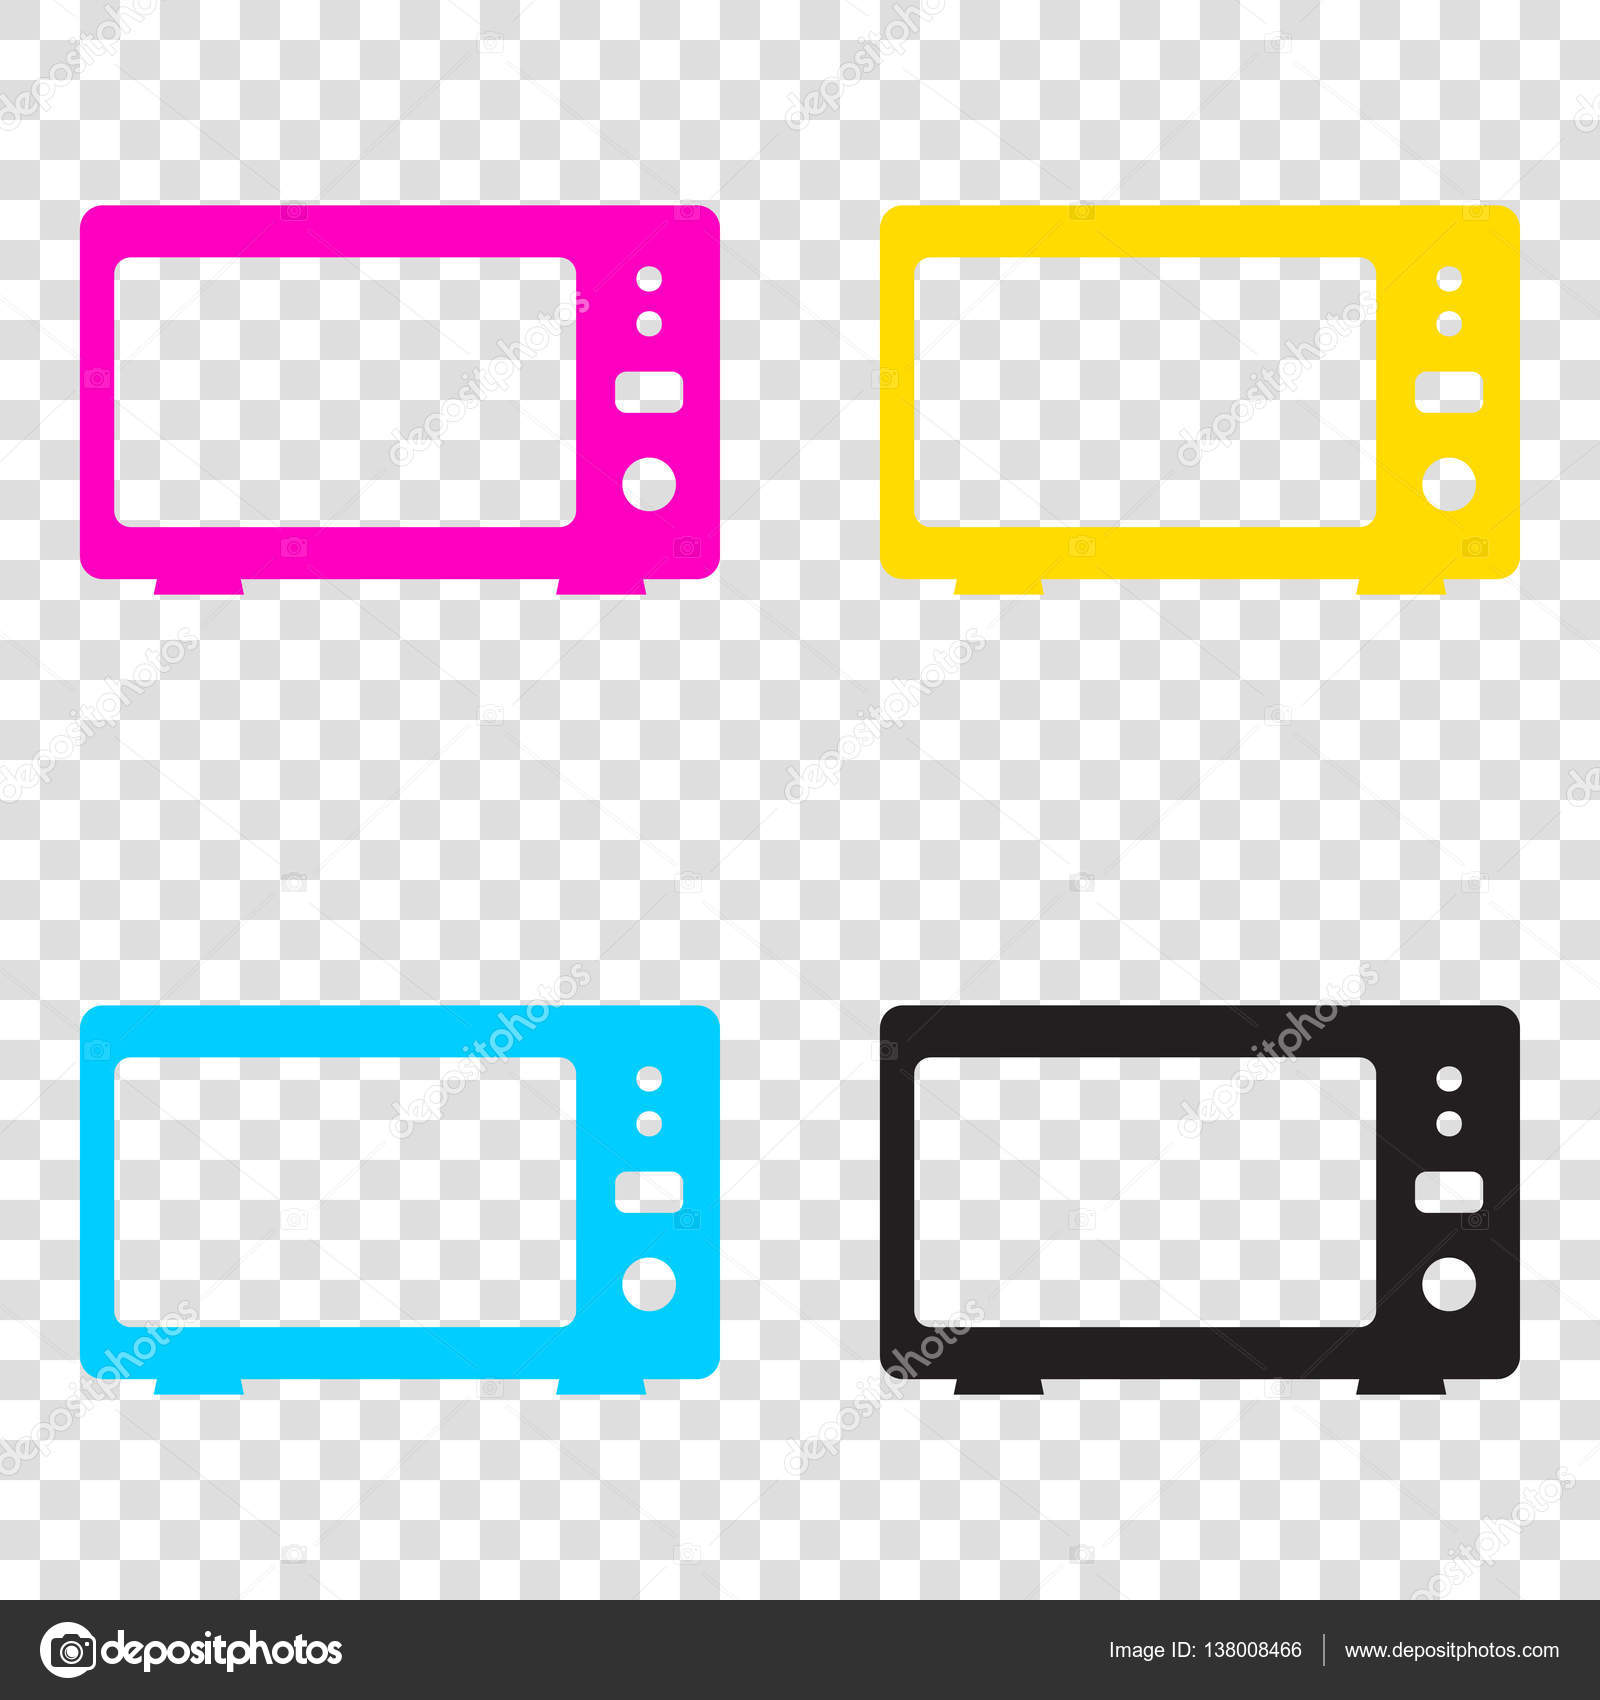 38e214eface2 Microwave sign illustration. CMYK icons on transparent background. Cyan